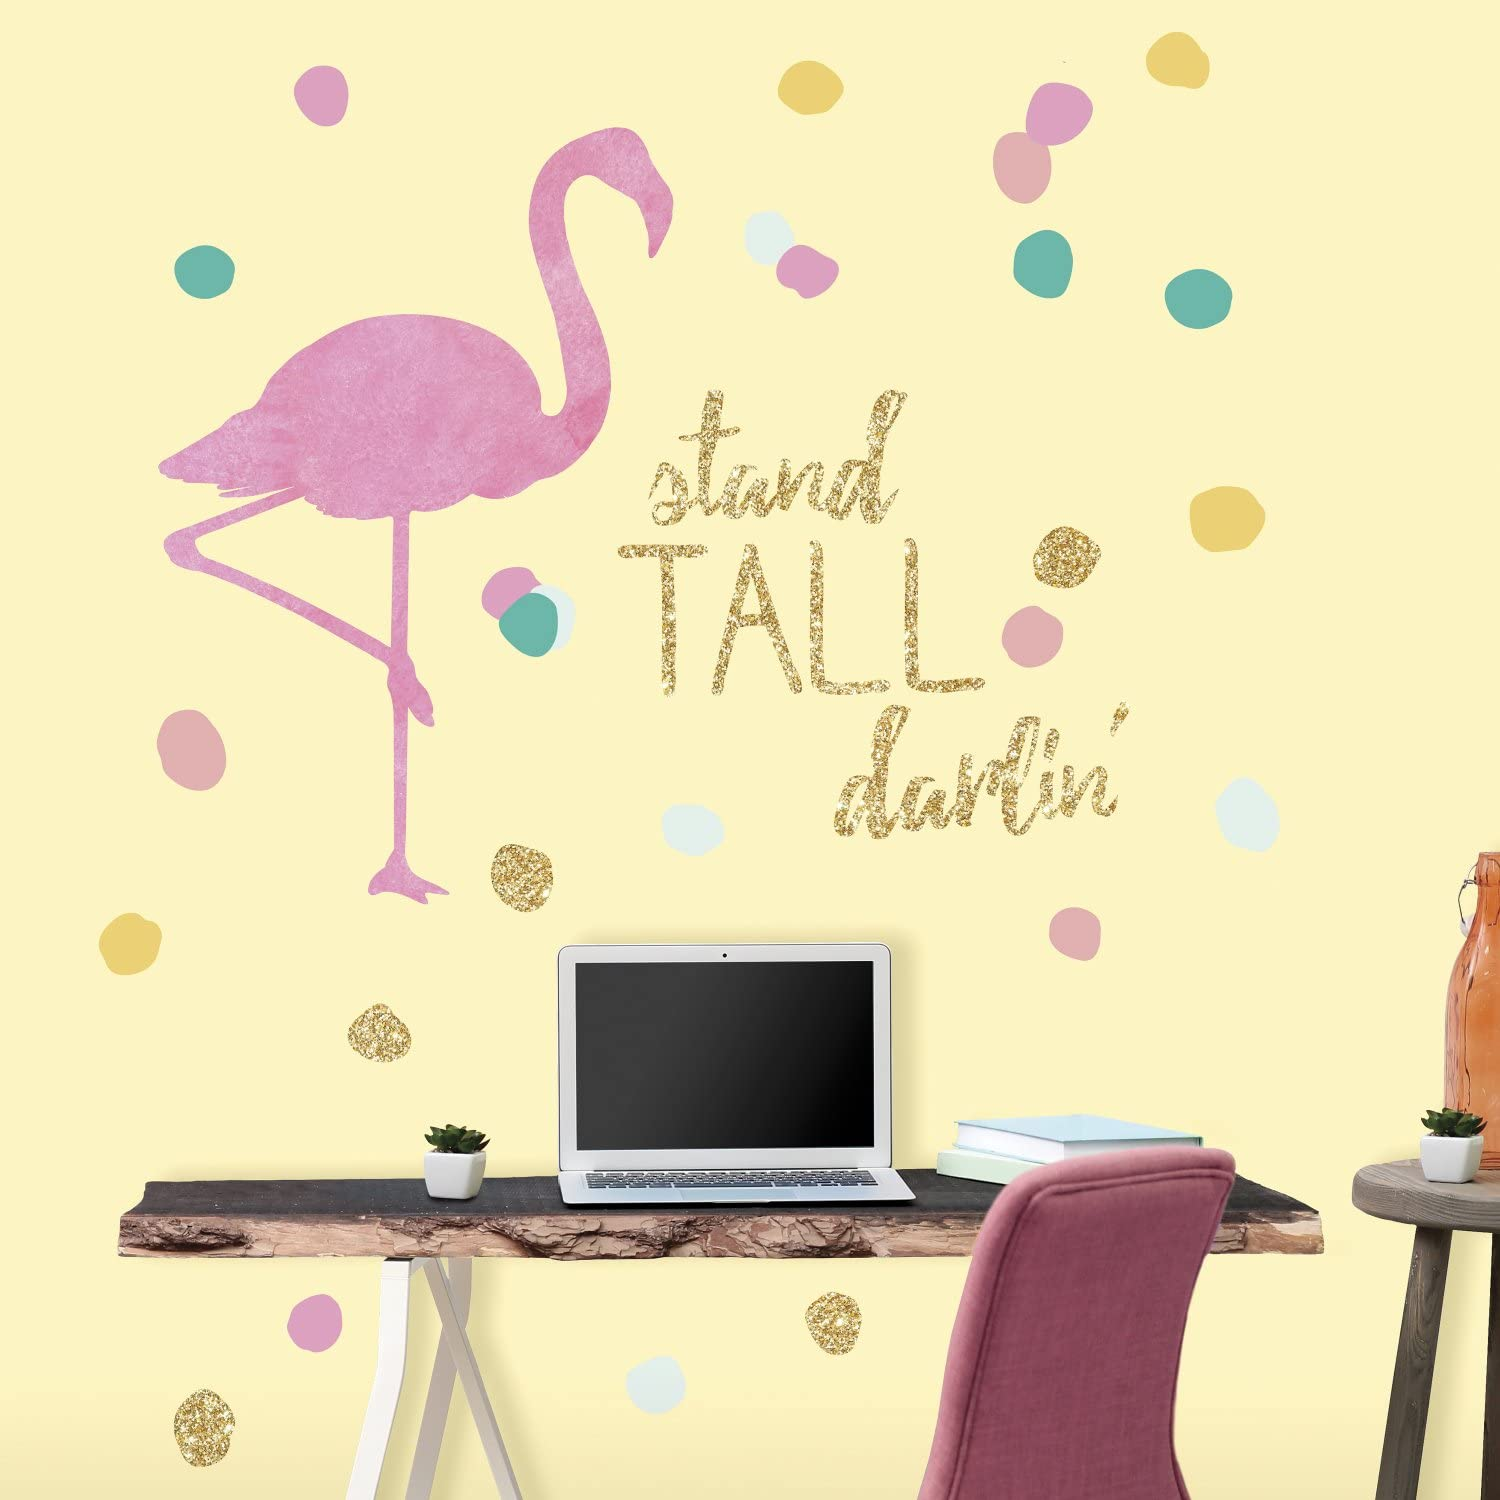 Roommates Rmk3506gm Stand Tall Flamingo Peel And Stick Wall Decals With Glitter Amazon Com